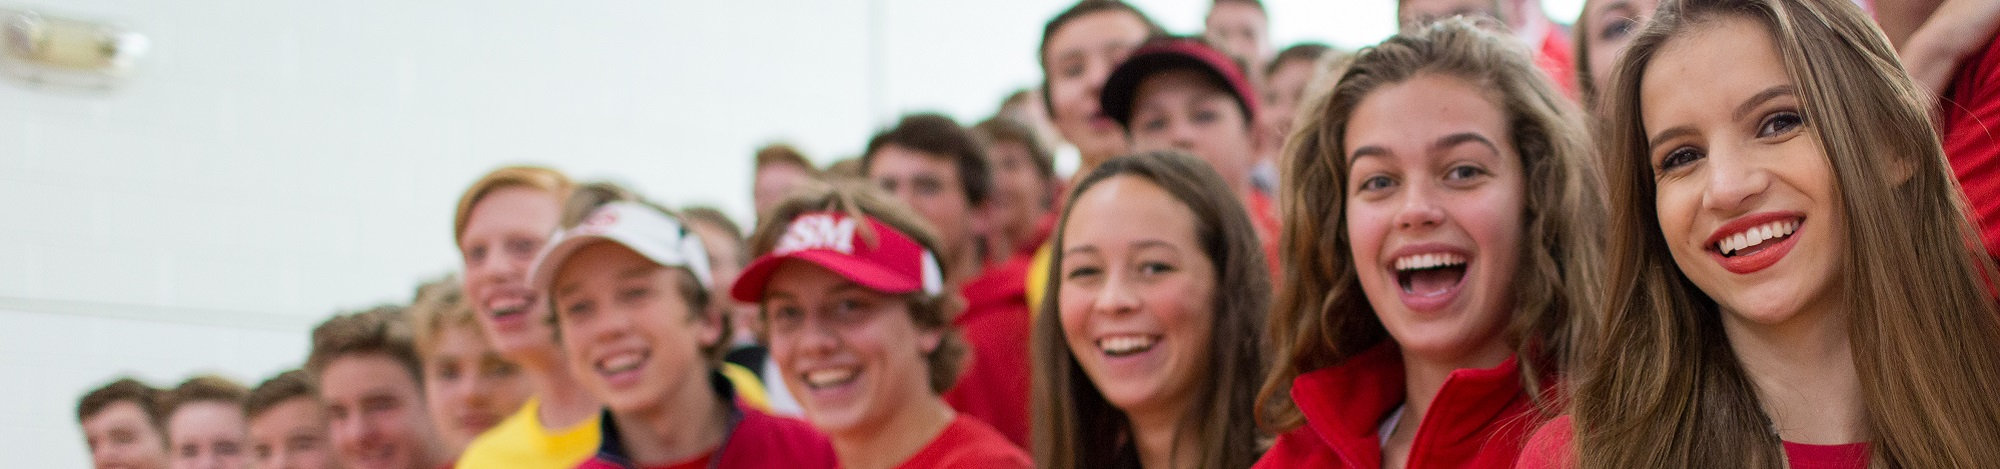 Up close shot of students smiling and laughing at a school pepfest